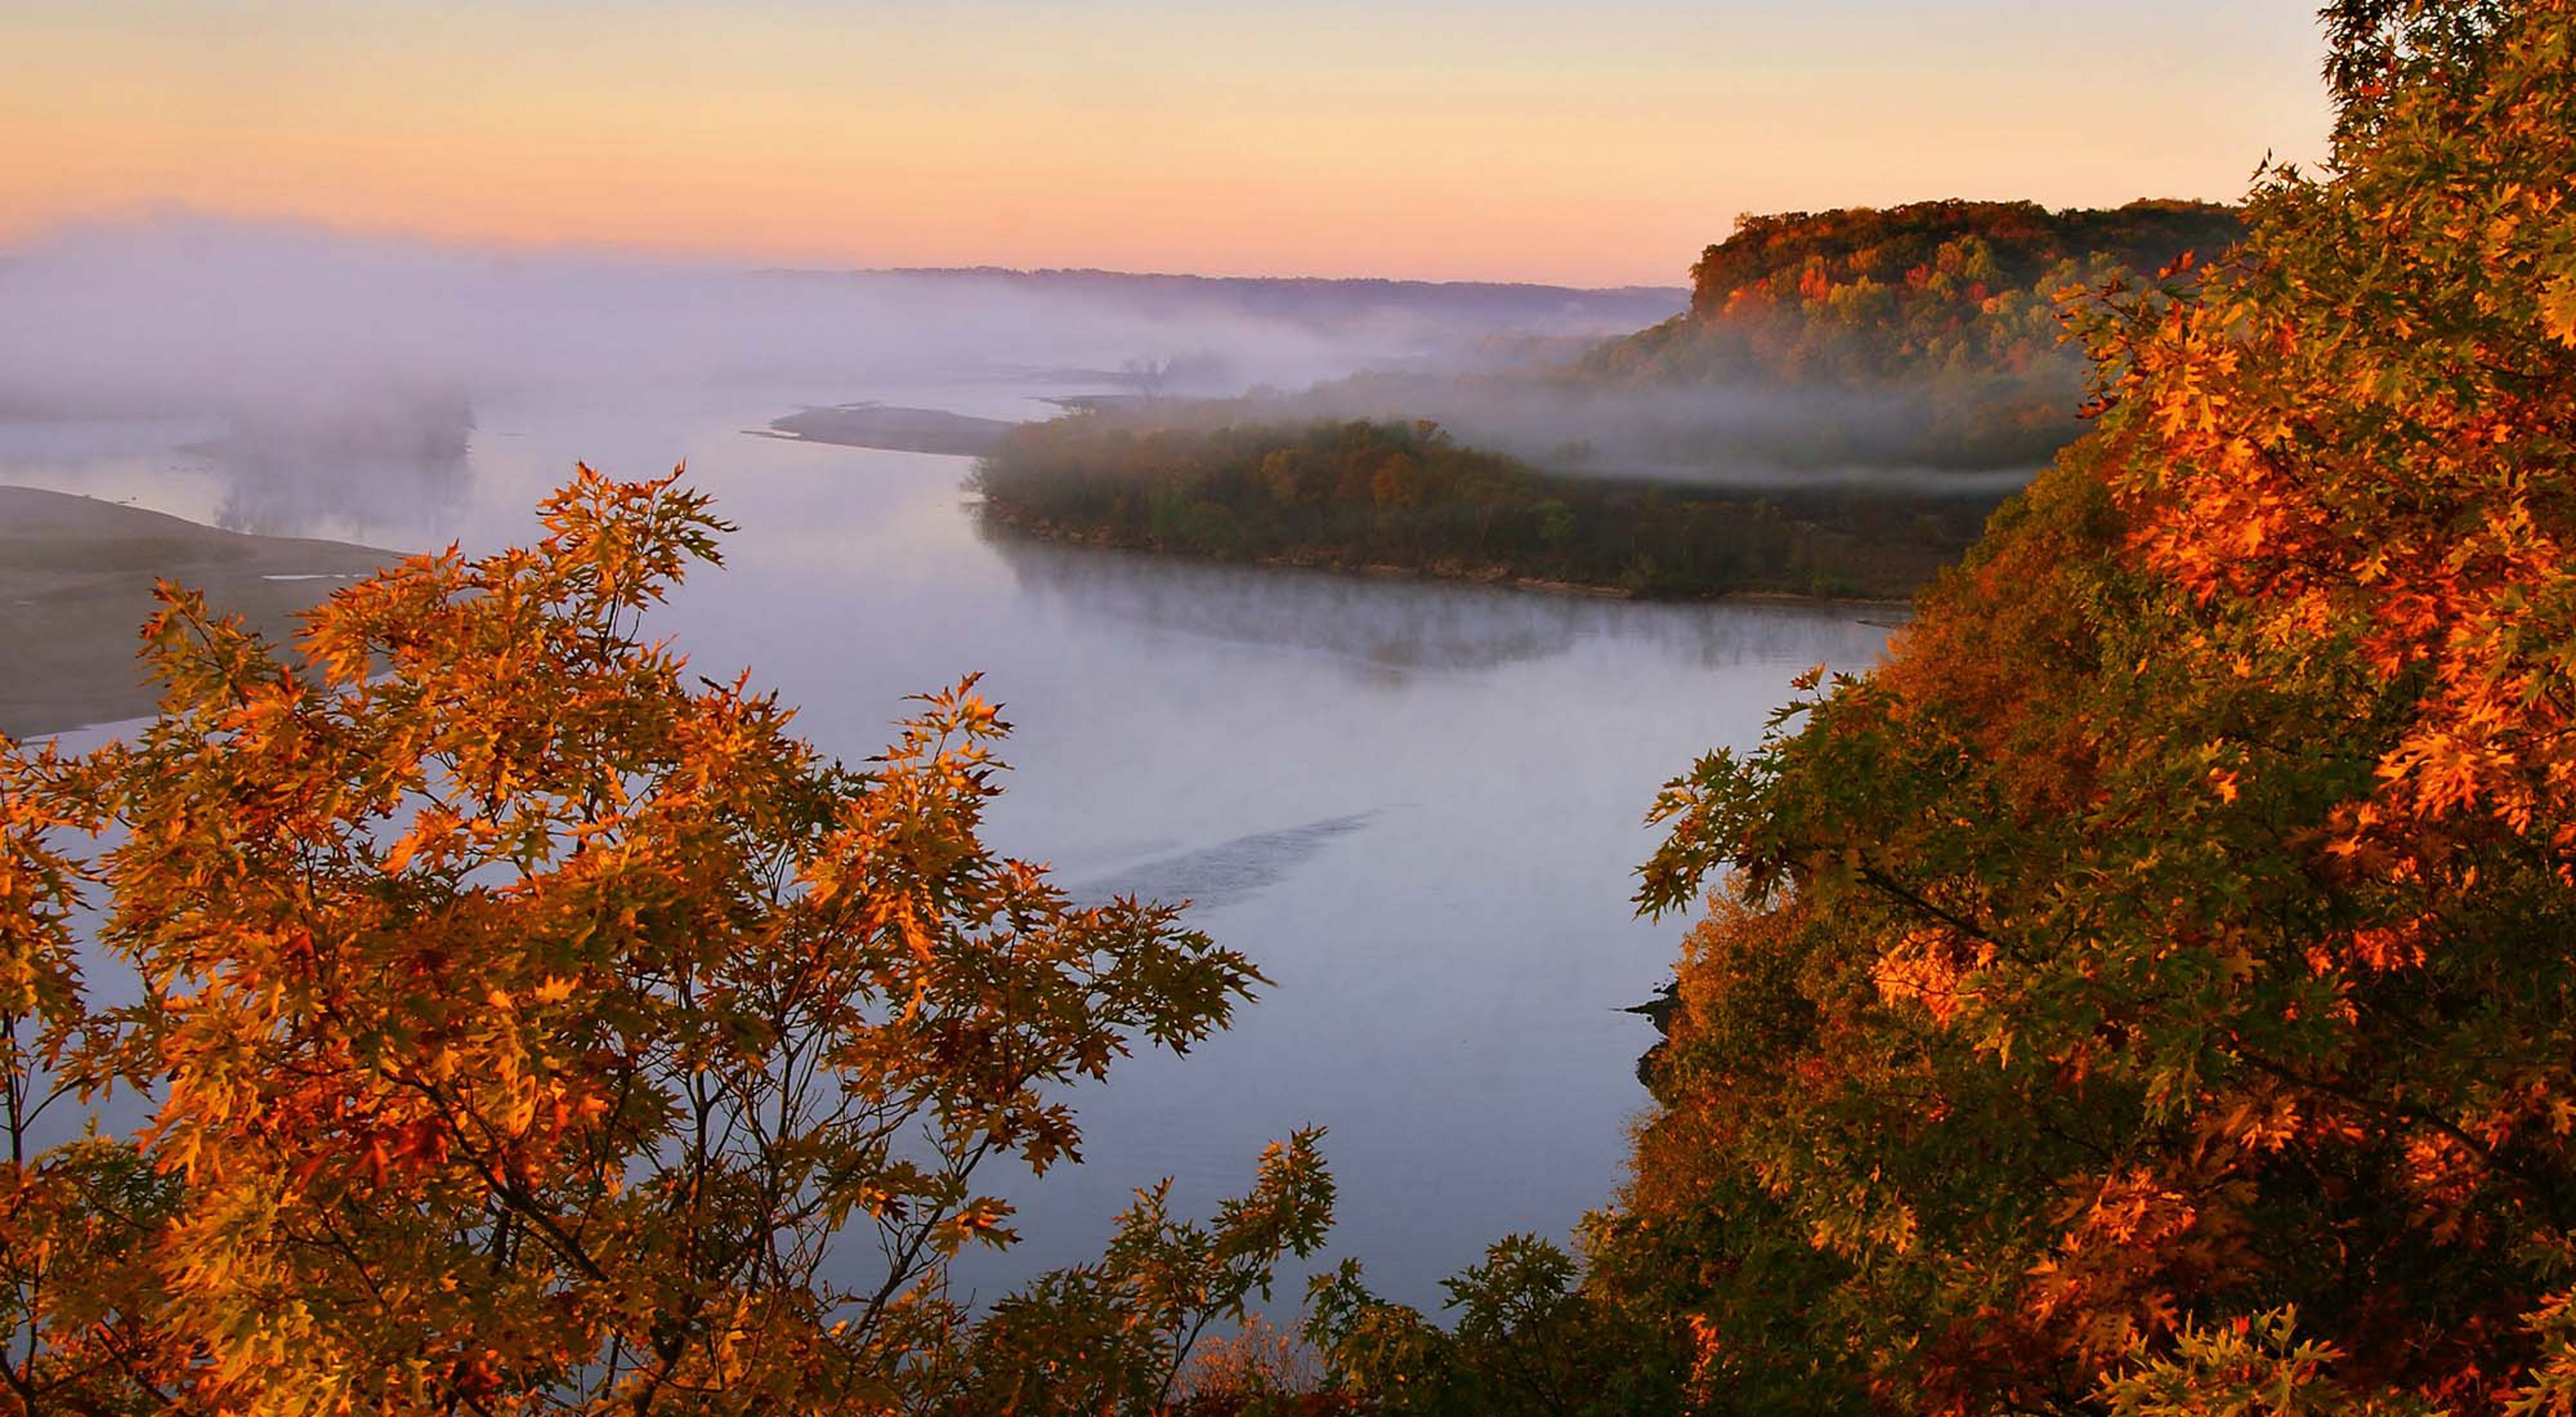 Sunrise lights up the fall colors of the oak trees in the foreground with a fog-covered river and forested bluffs in the background.